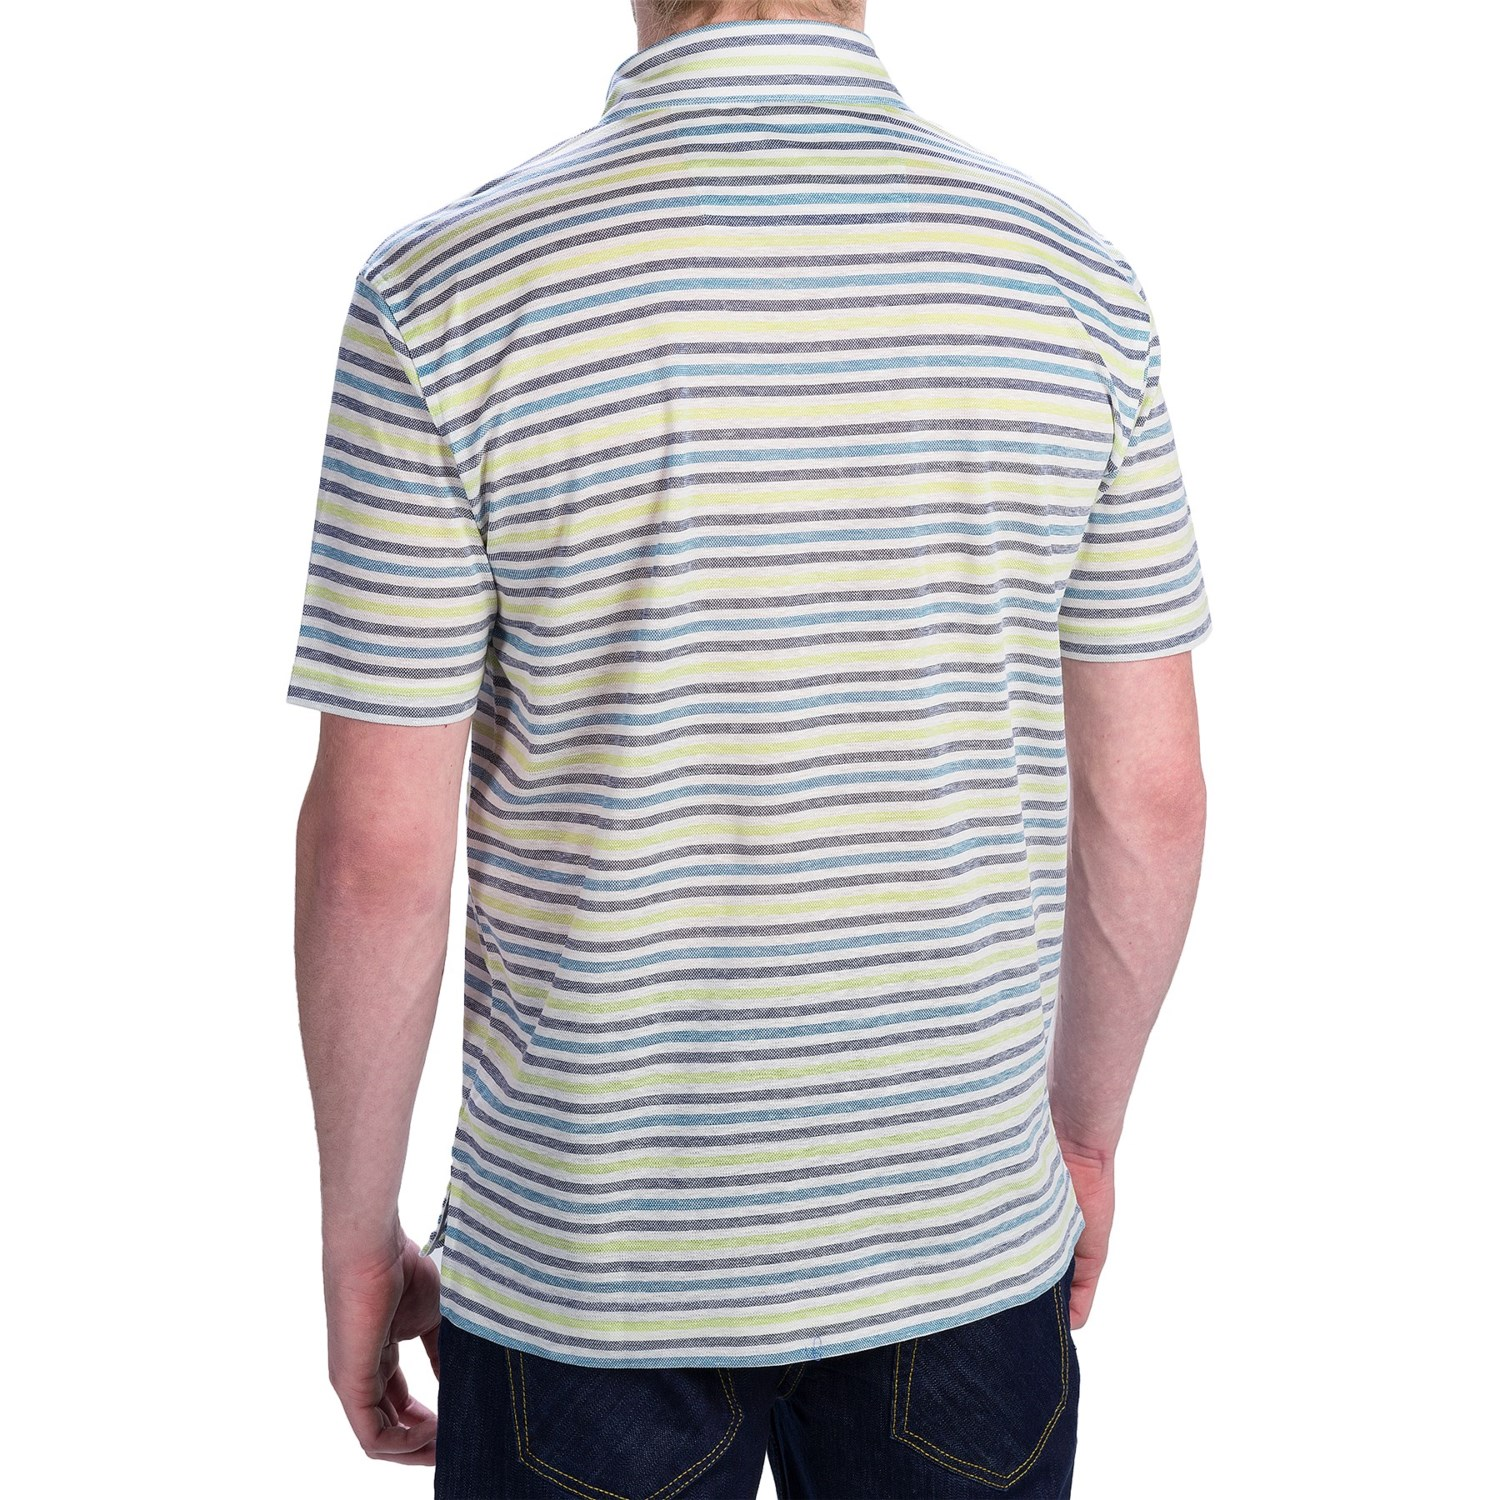 Robert Talbott Striped Pique Polo Shirt For Men 9205p